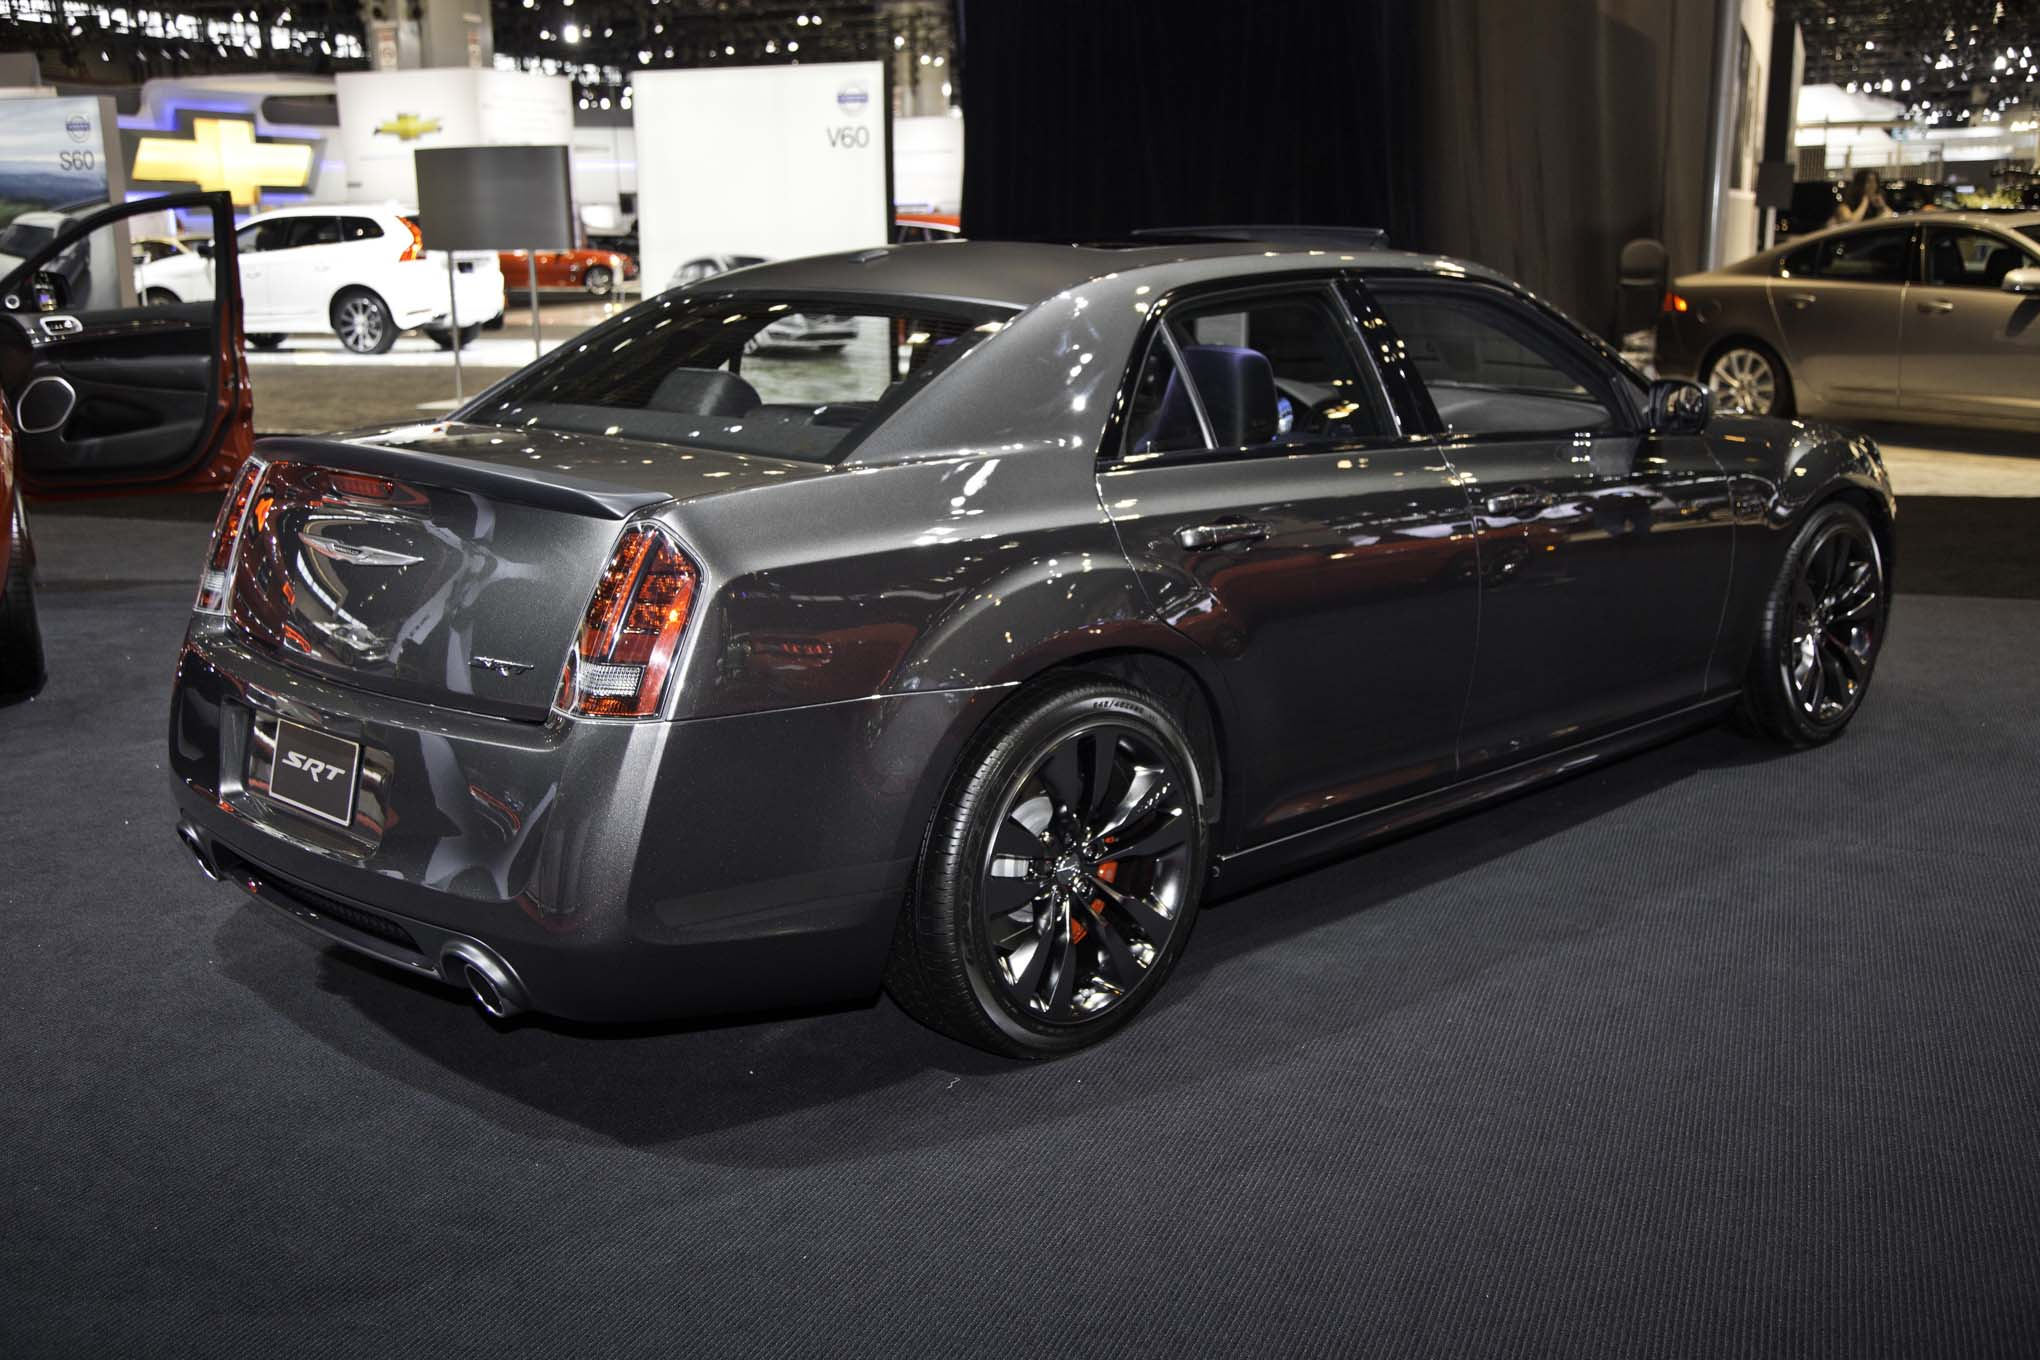 2014 Chrysler 300 #10